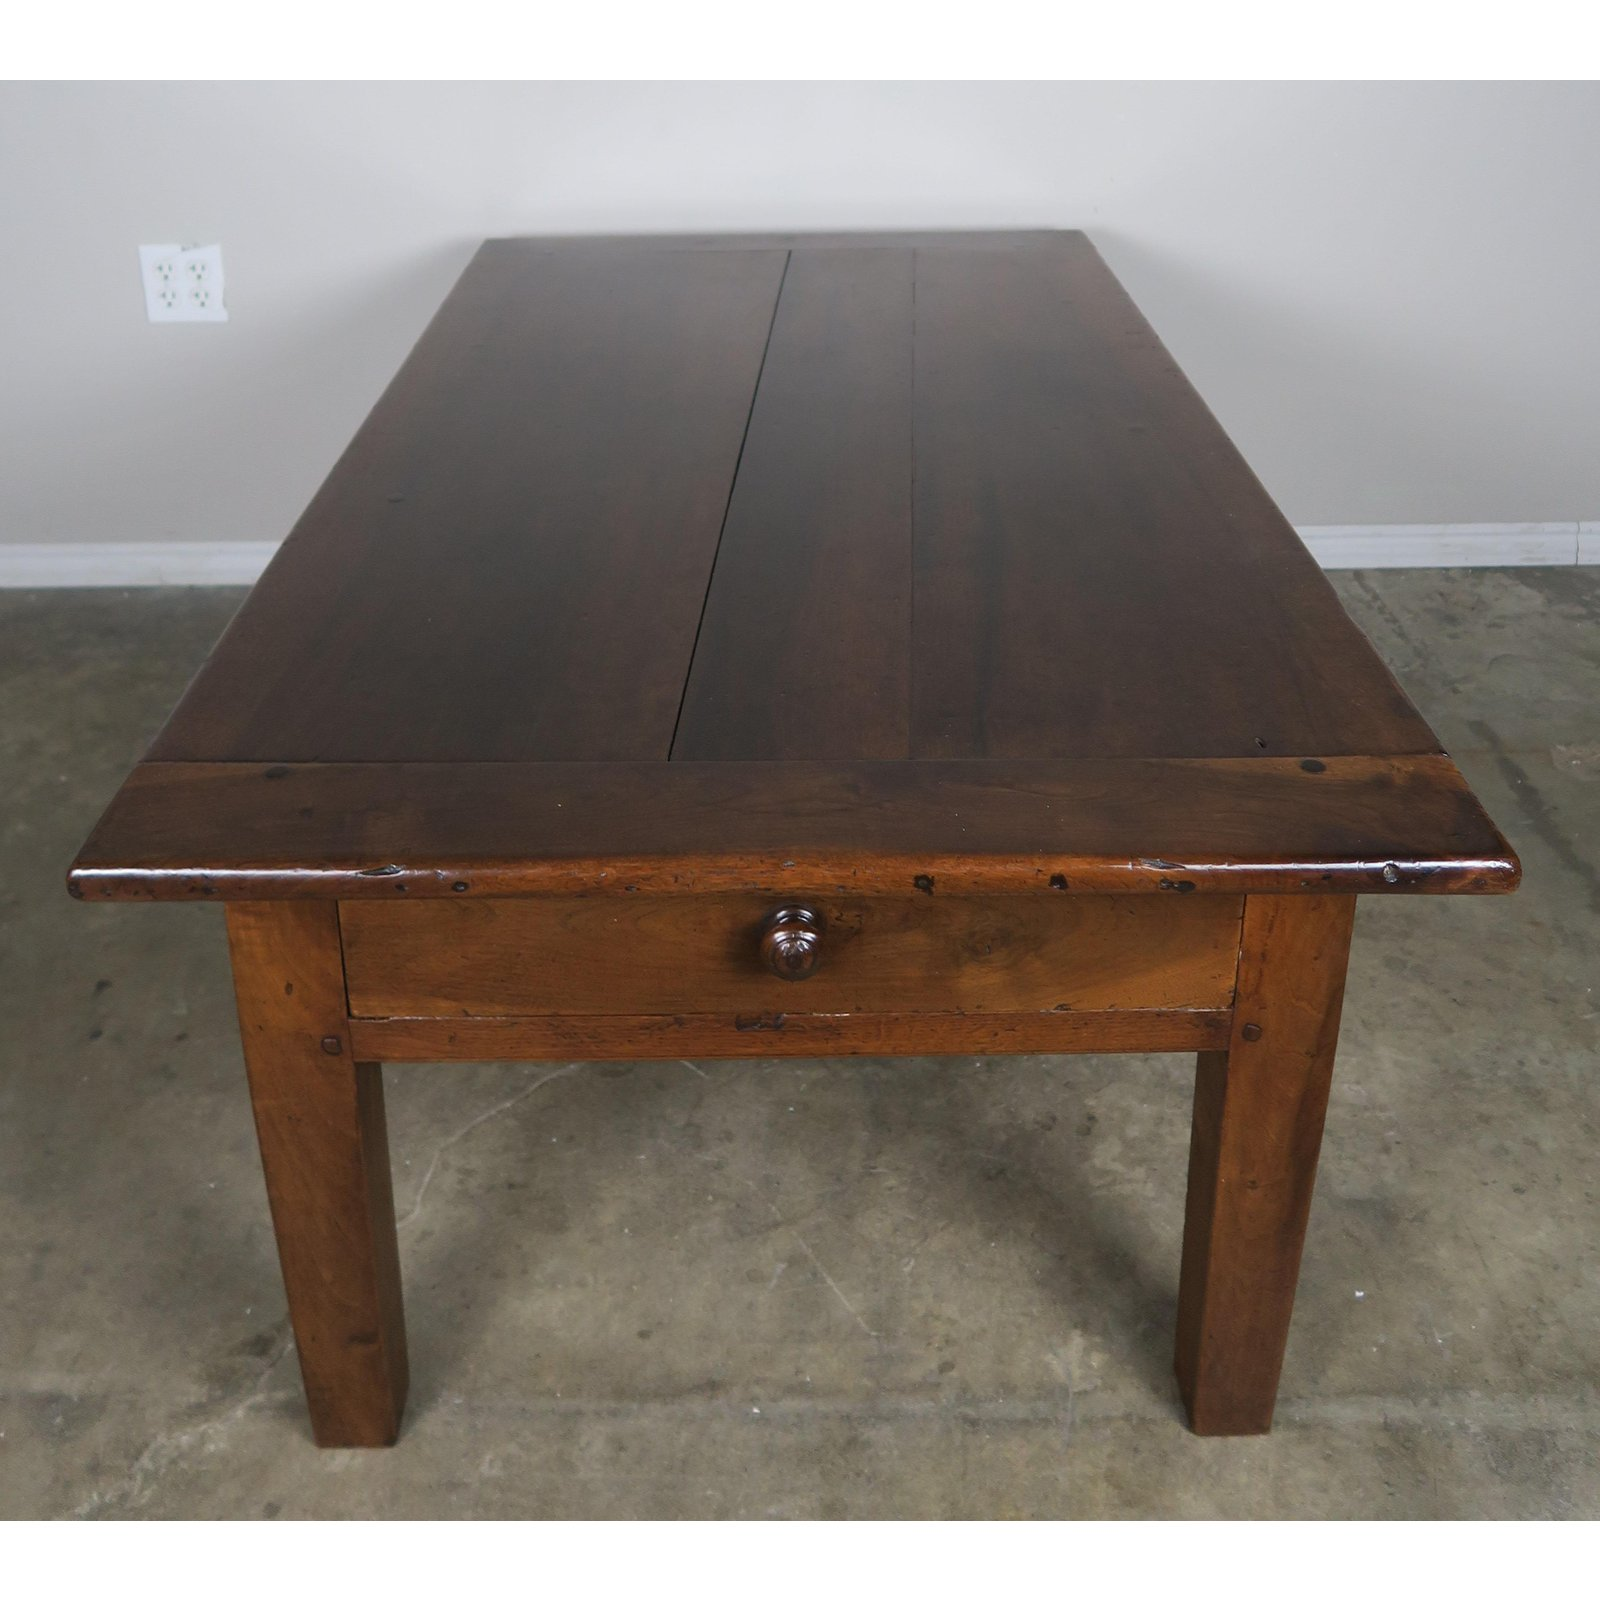 Buy Coffee Table With Drawers: 19th Century English Walnut Coffee Table With Drawers